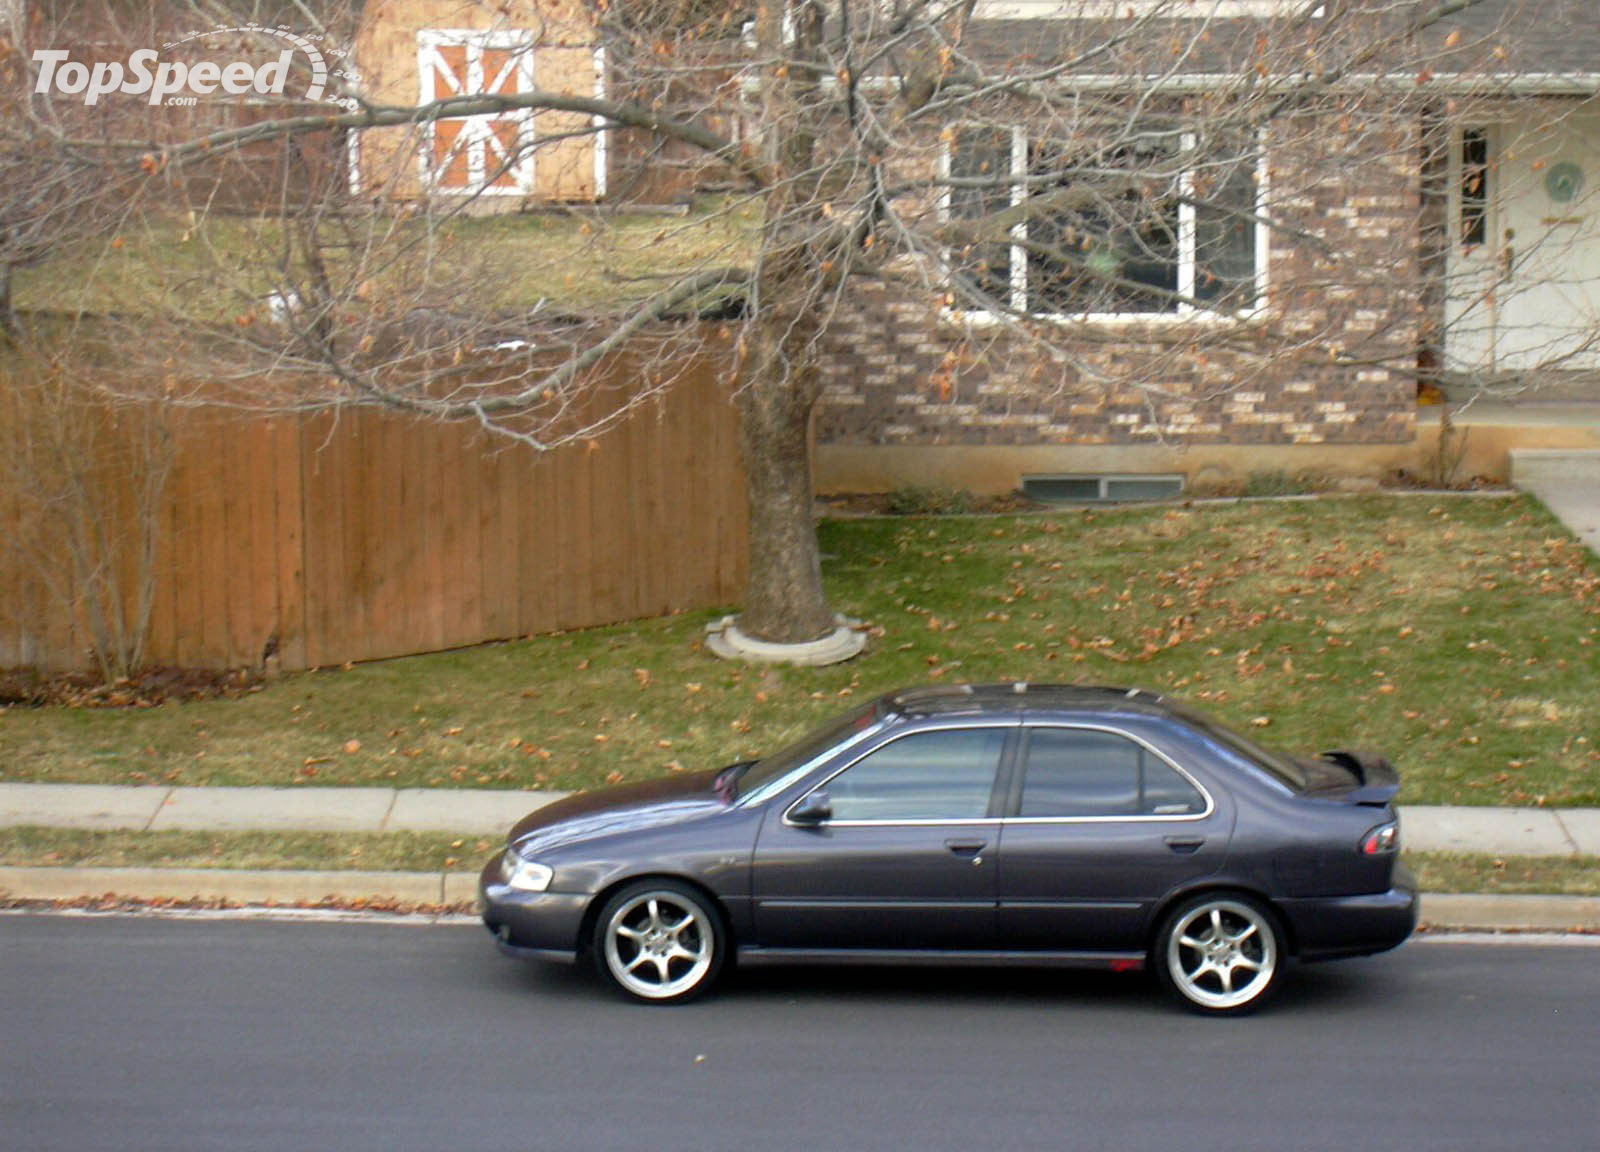 1998 nissan maxima station wagon pictures information and specs auto. Black Bedroom Furniture Sets. Home Design Ideas